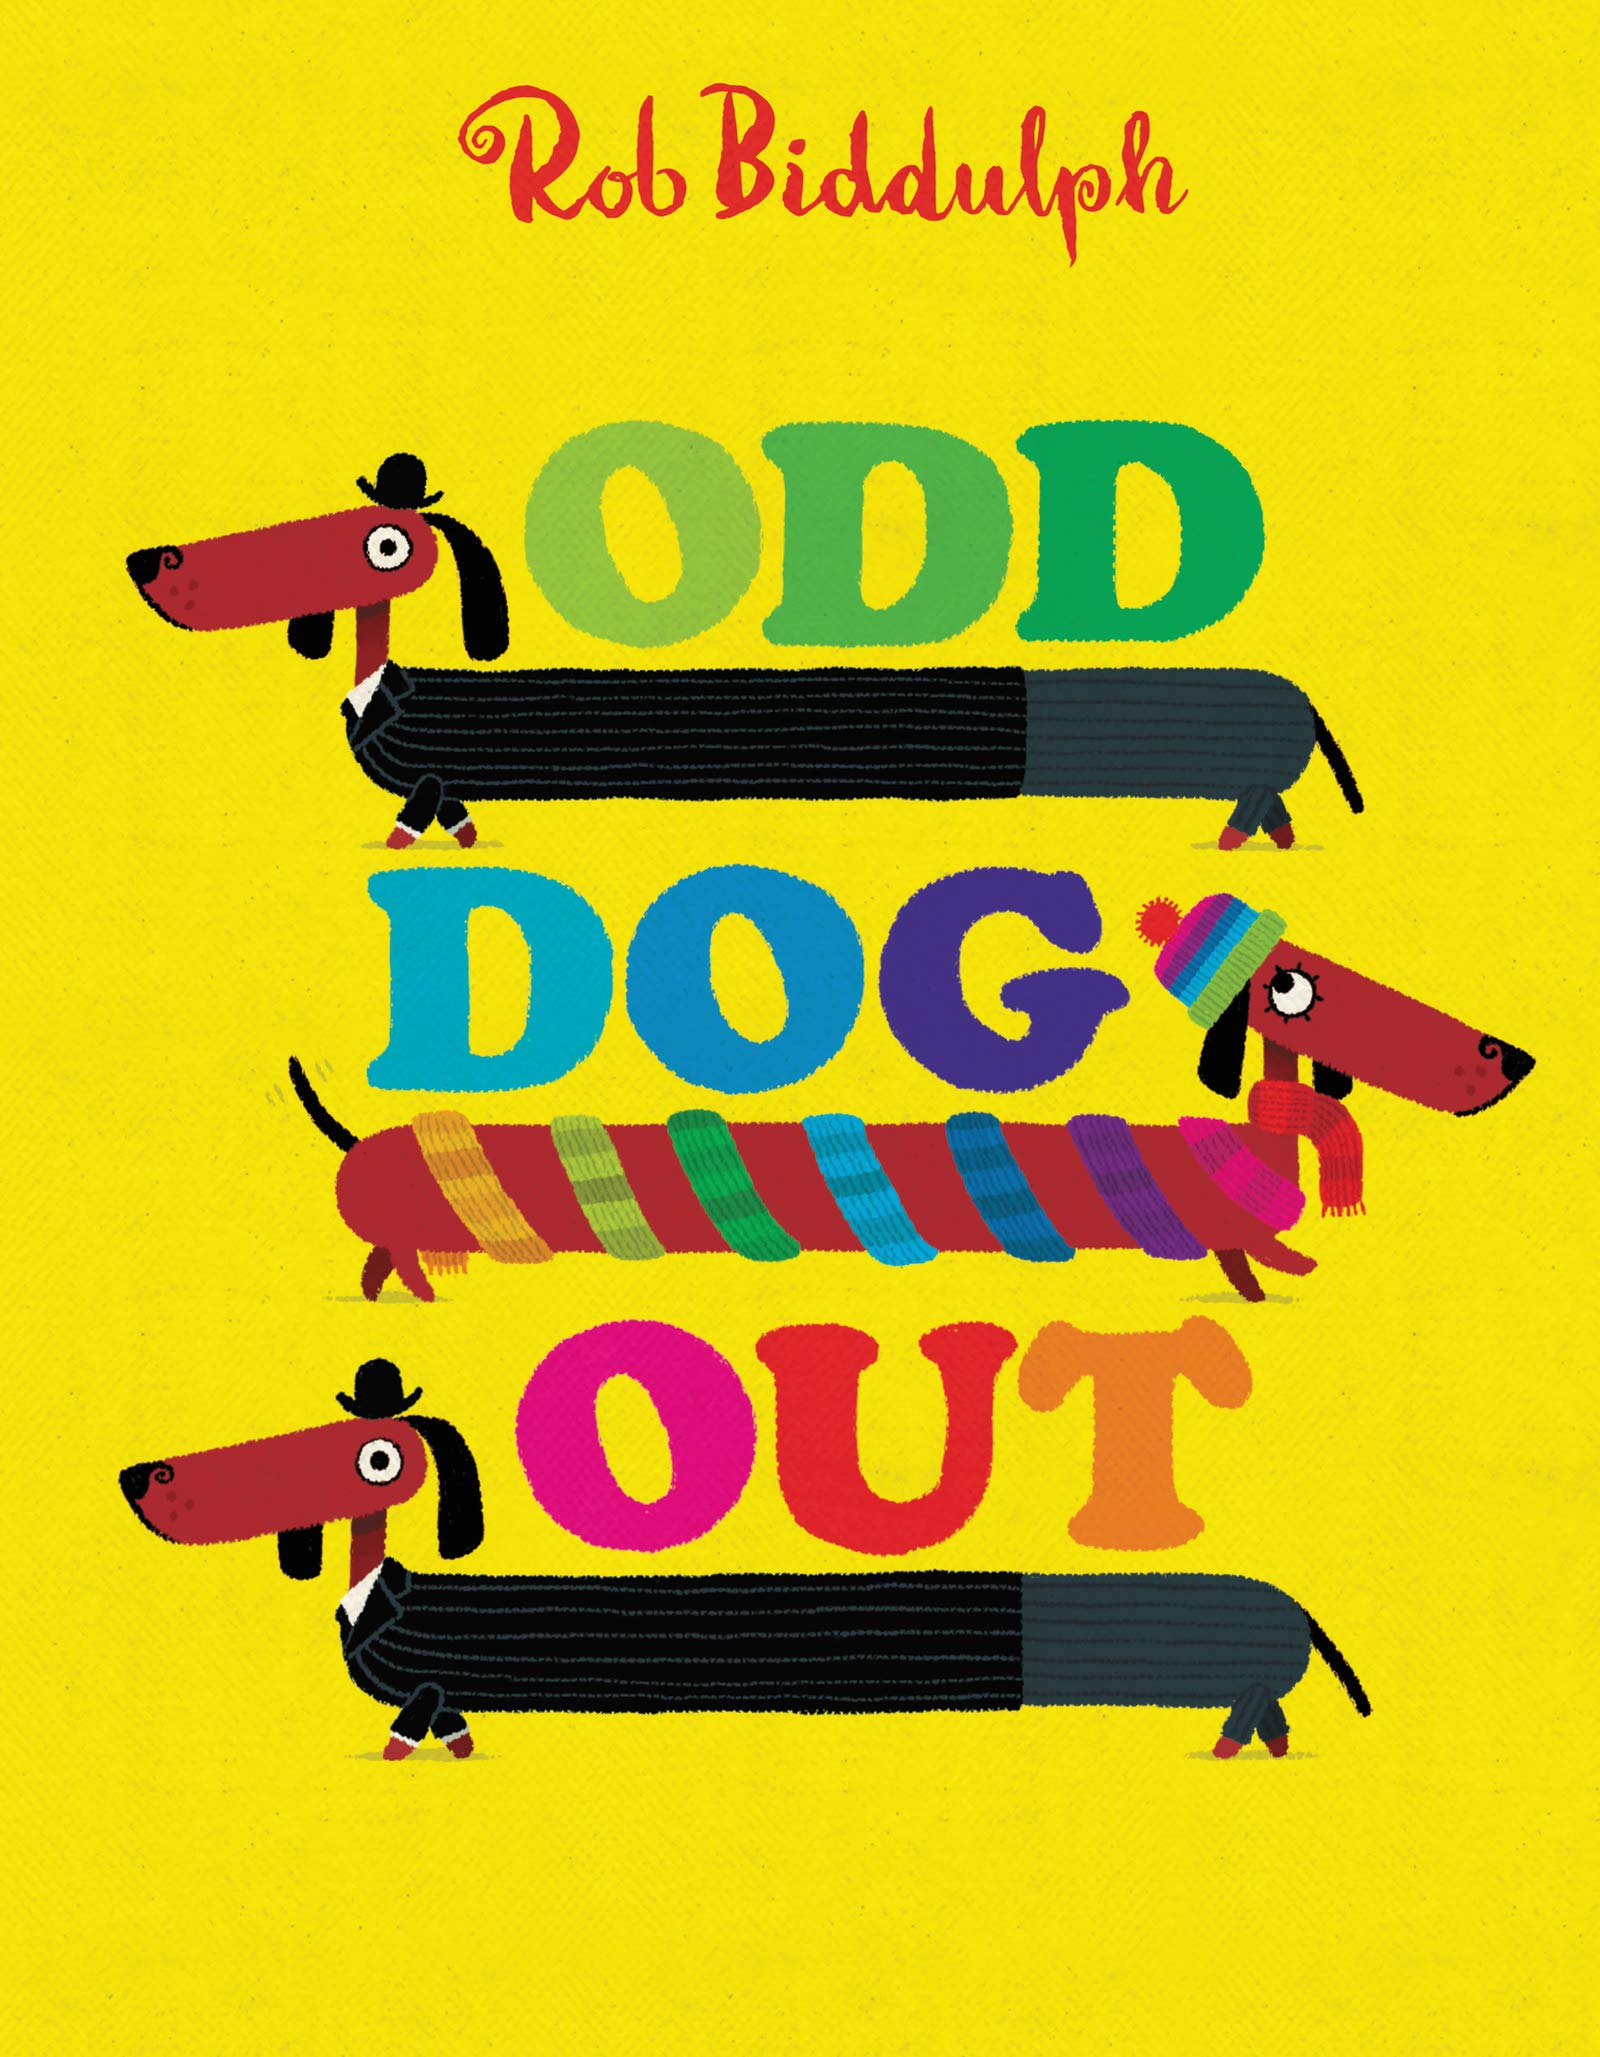 Odd Dog Out: Amazon.co.uk: Rob Biddulph: Books